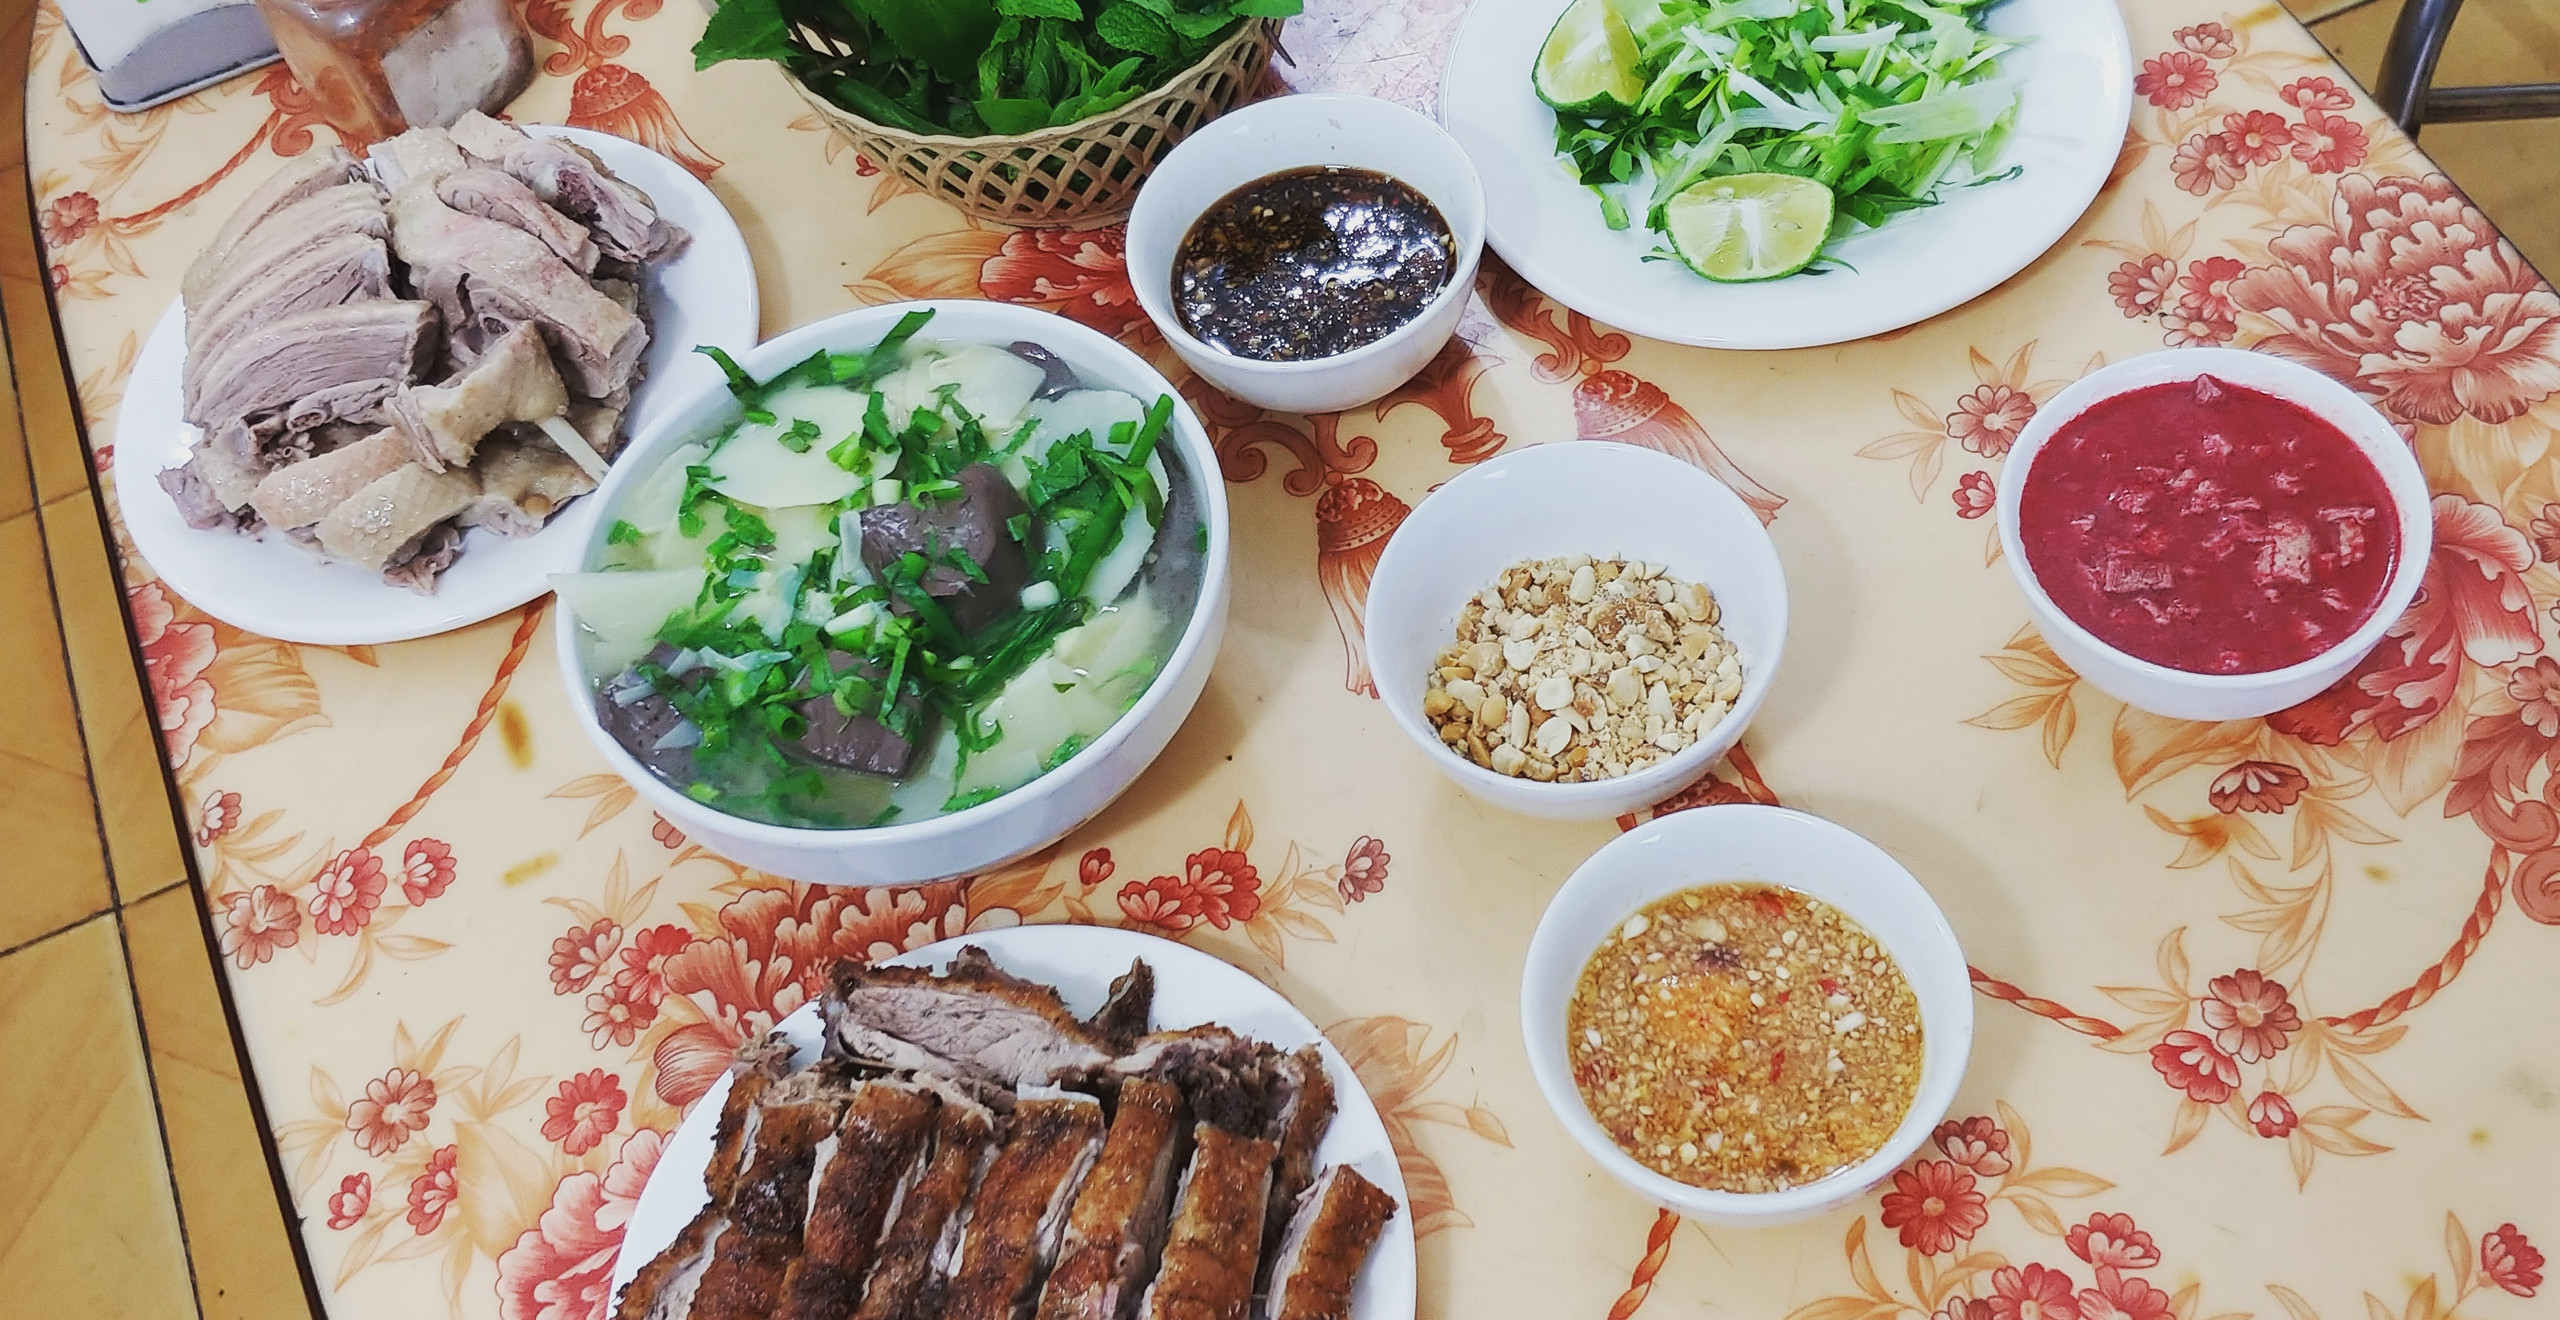 A trip to the market and this is the final result; a full on Vietnamese meal, cooked by Sashi himself!